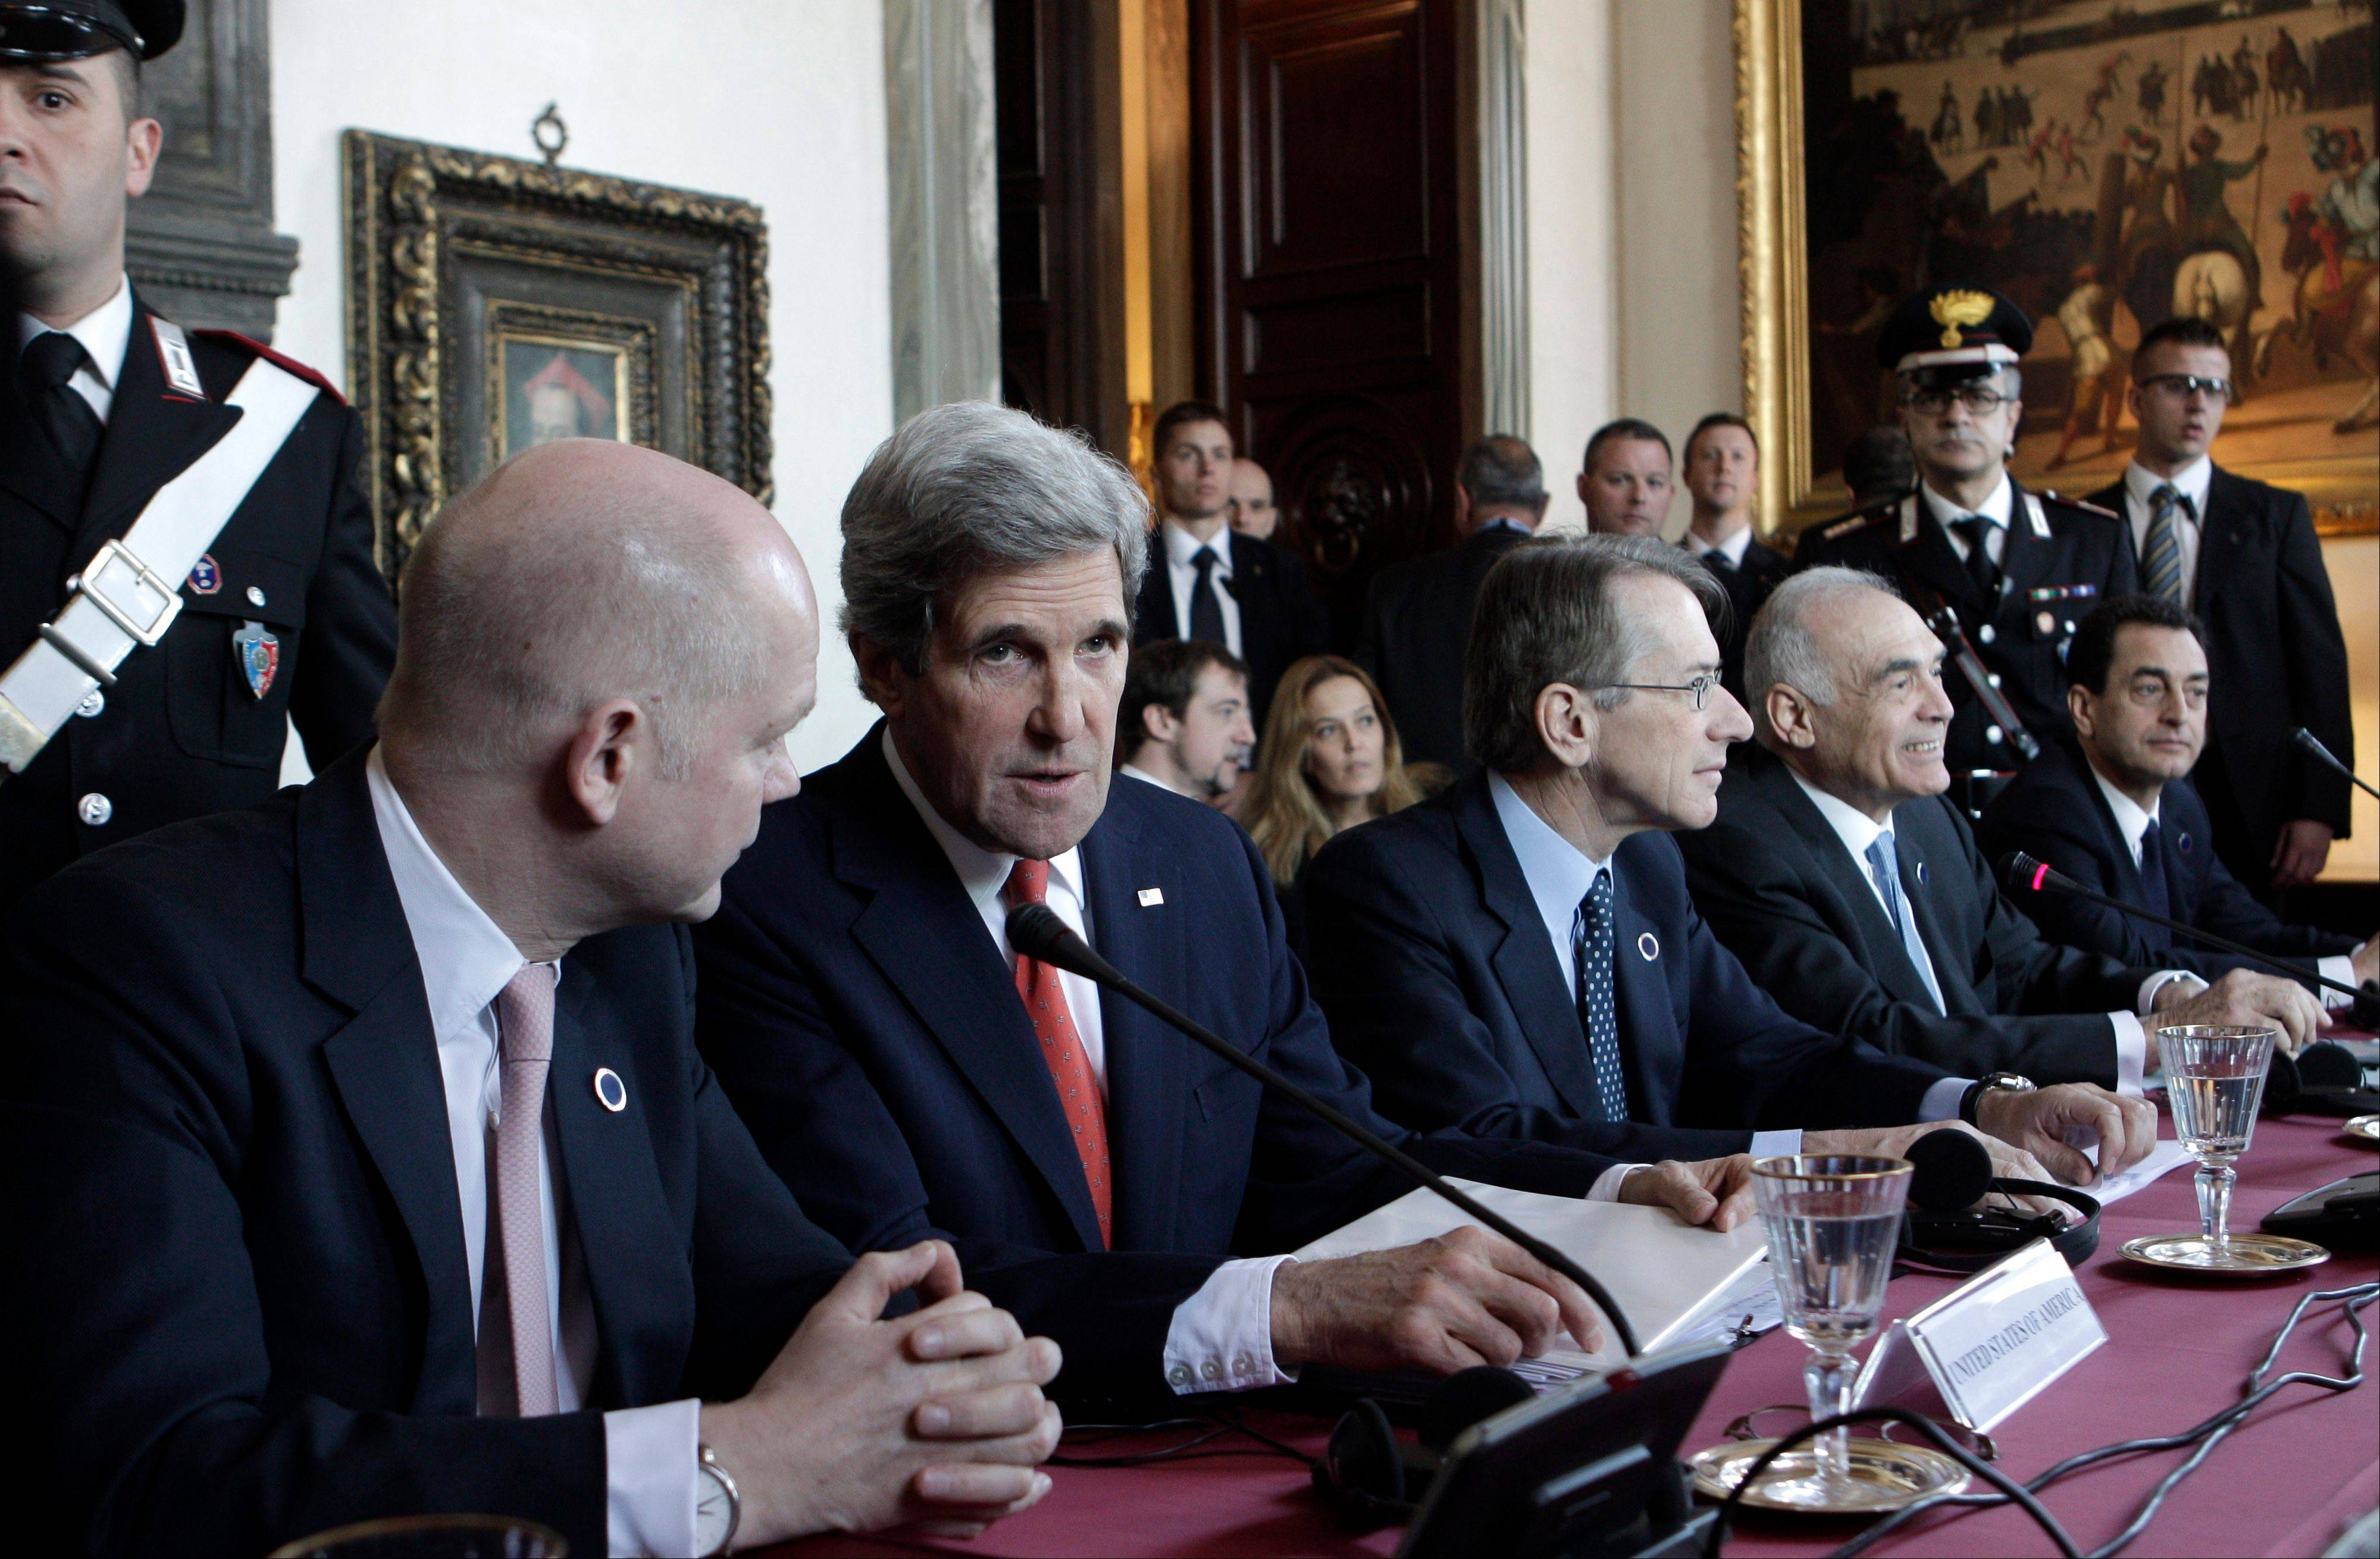 U.S. secretary of state John Kerry, second from left, talks to British Prime Minister William Hague, left, as Italian Foreign Minister Giulio Terzi, third from left, and Egyptian Foreign Minister Mohamed Kamel Amr, second from right, are seen Thursday during an international conference on Syria at Villa Madama, Rome. The United States is looking for more tangible ways to support Syria�s rebels and bolster a fledgling political movement that is struggling to deliver basic services after nearly two years of civil war, Kerry said Wednesday. In the background at left is British Foreign Secretary William Hague.